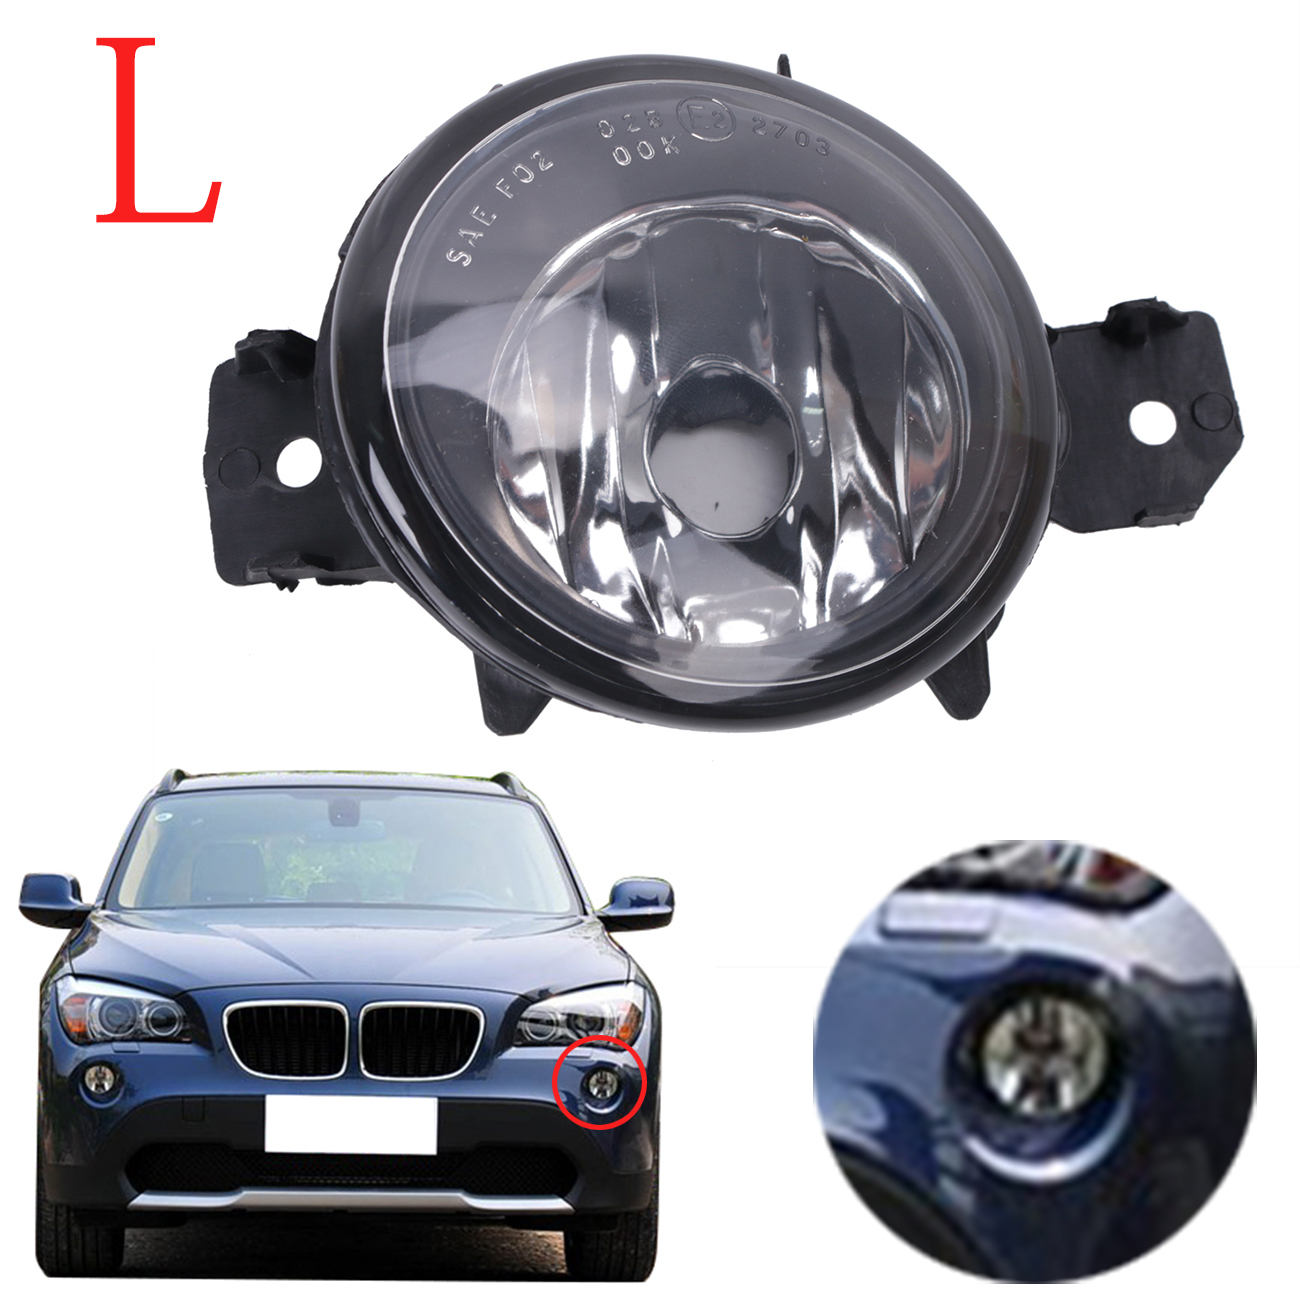 For bmw x3 x5 e70 e83 front fog lights clear driving lamps foglamp housing left side